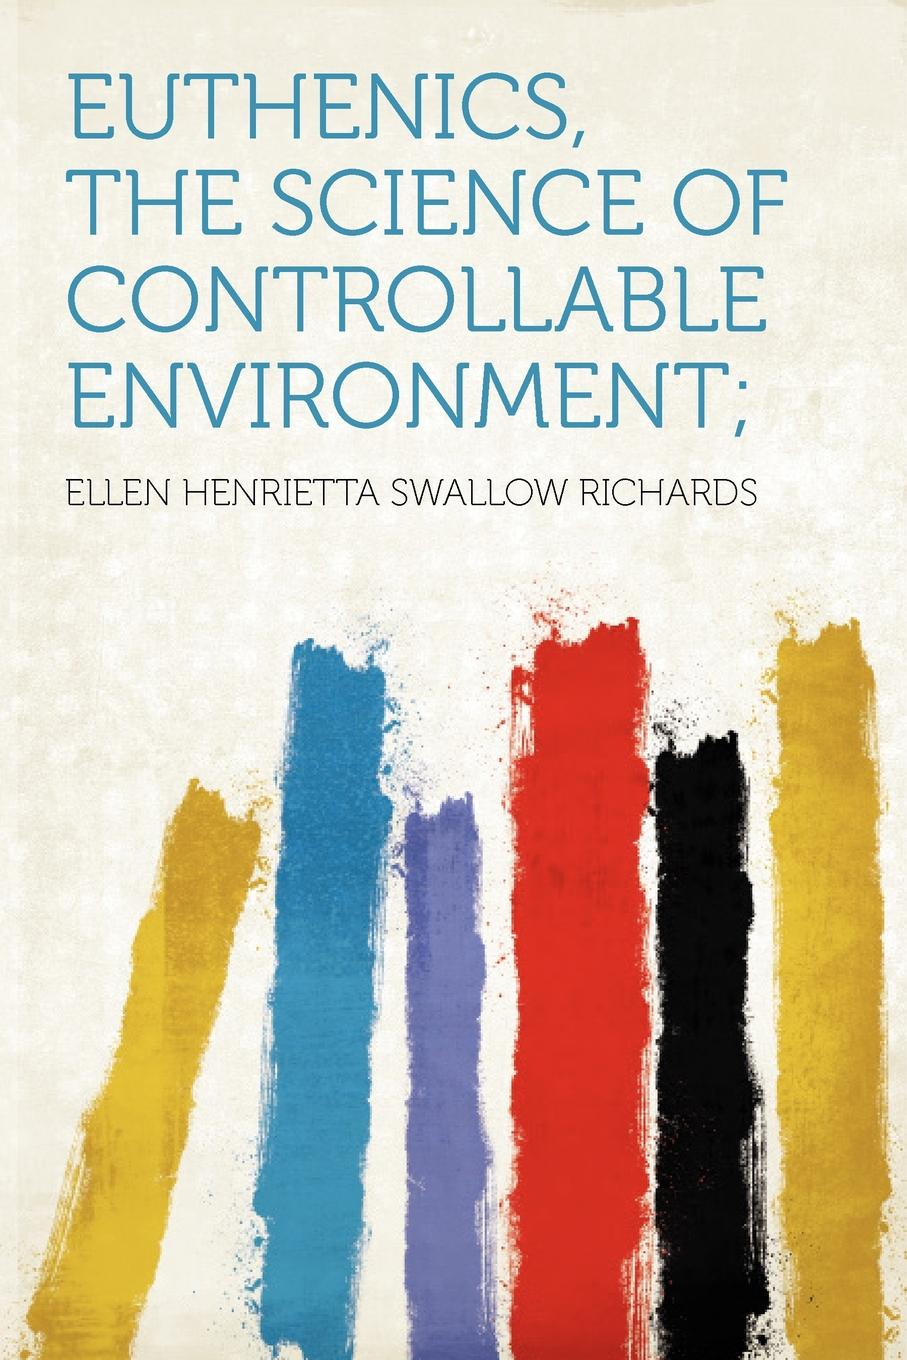 Euthenics, the Science of Controllable Environment;.